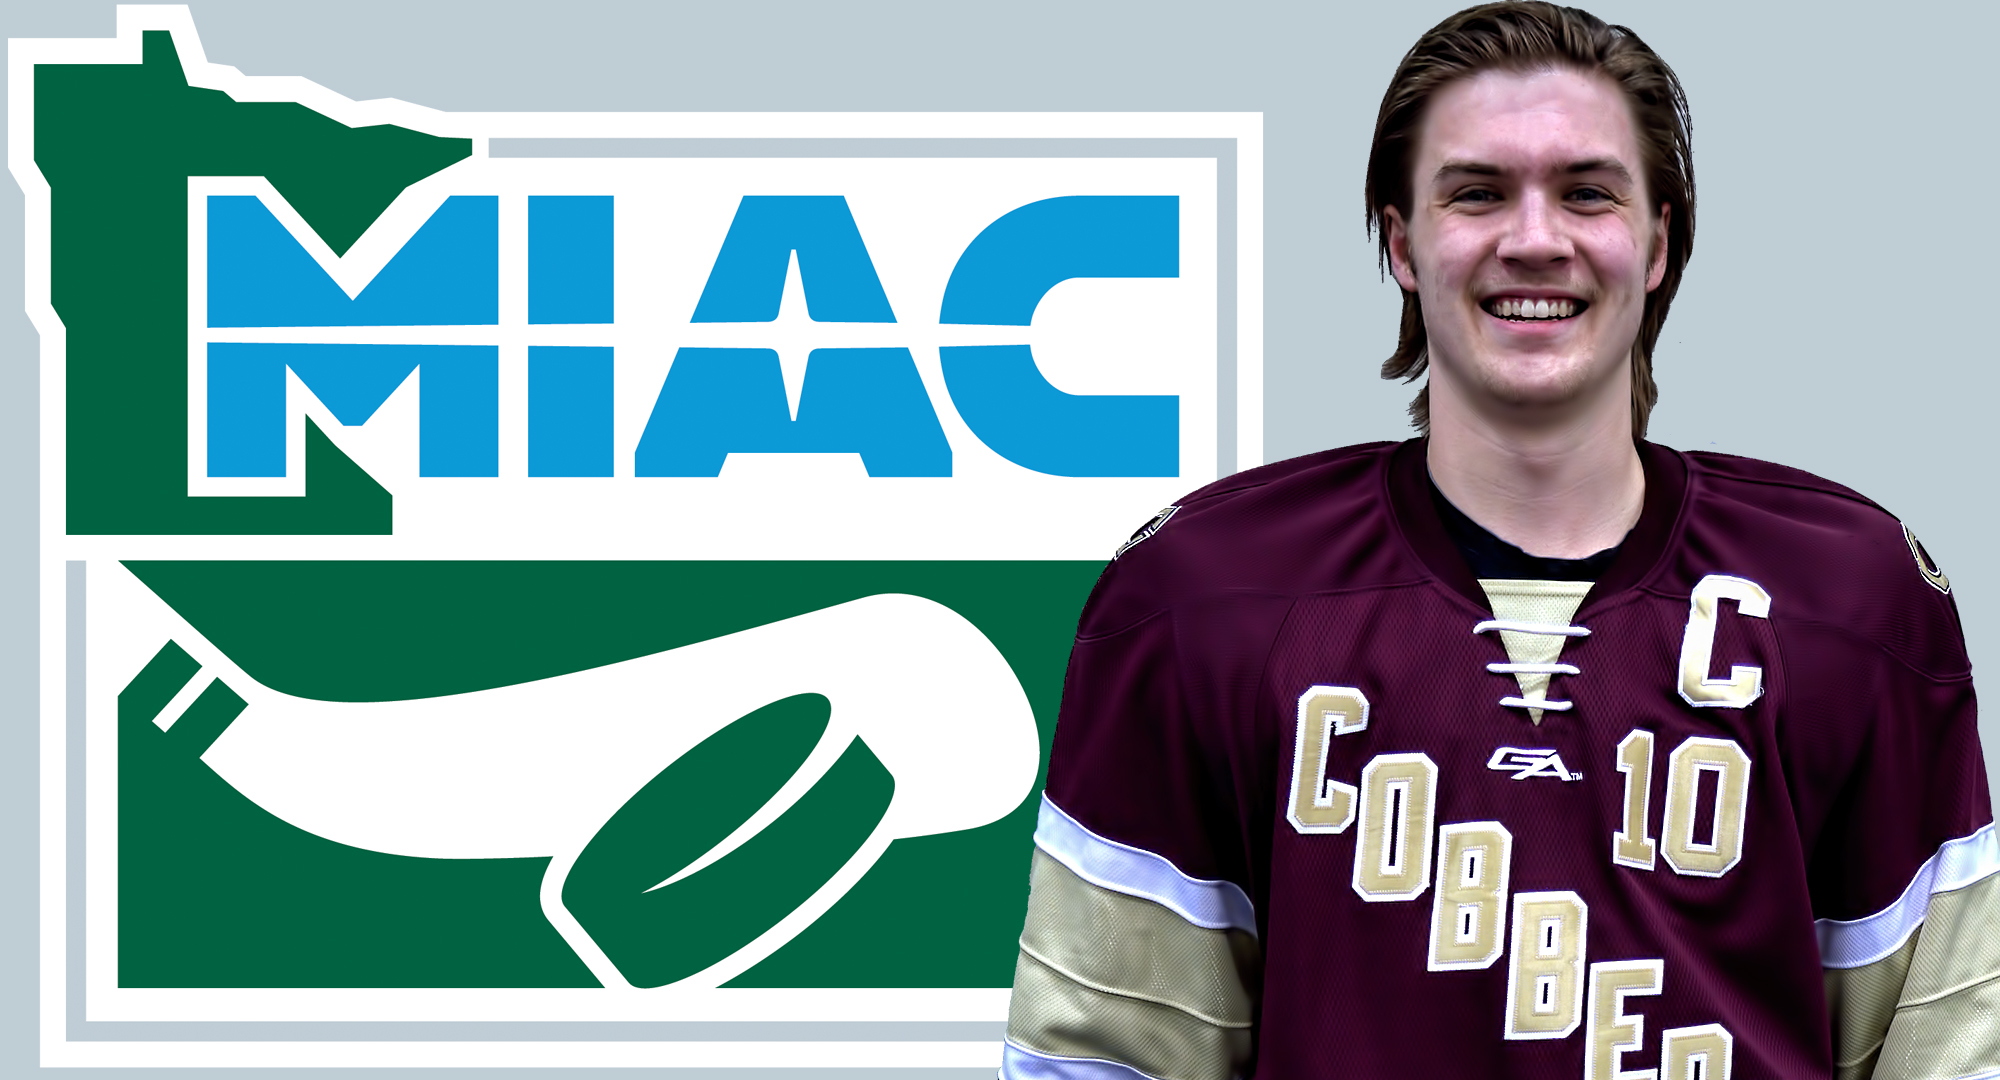 Senior Zach Doerring became the fifth Cobber player since 1982 to earn the MIAC Most Valuable Player award.